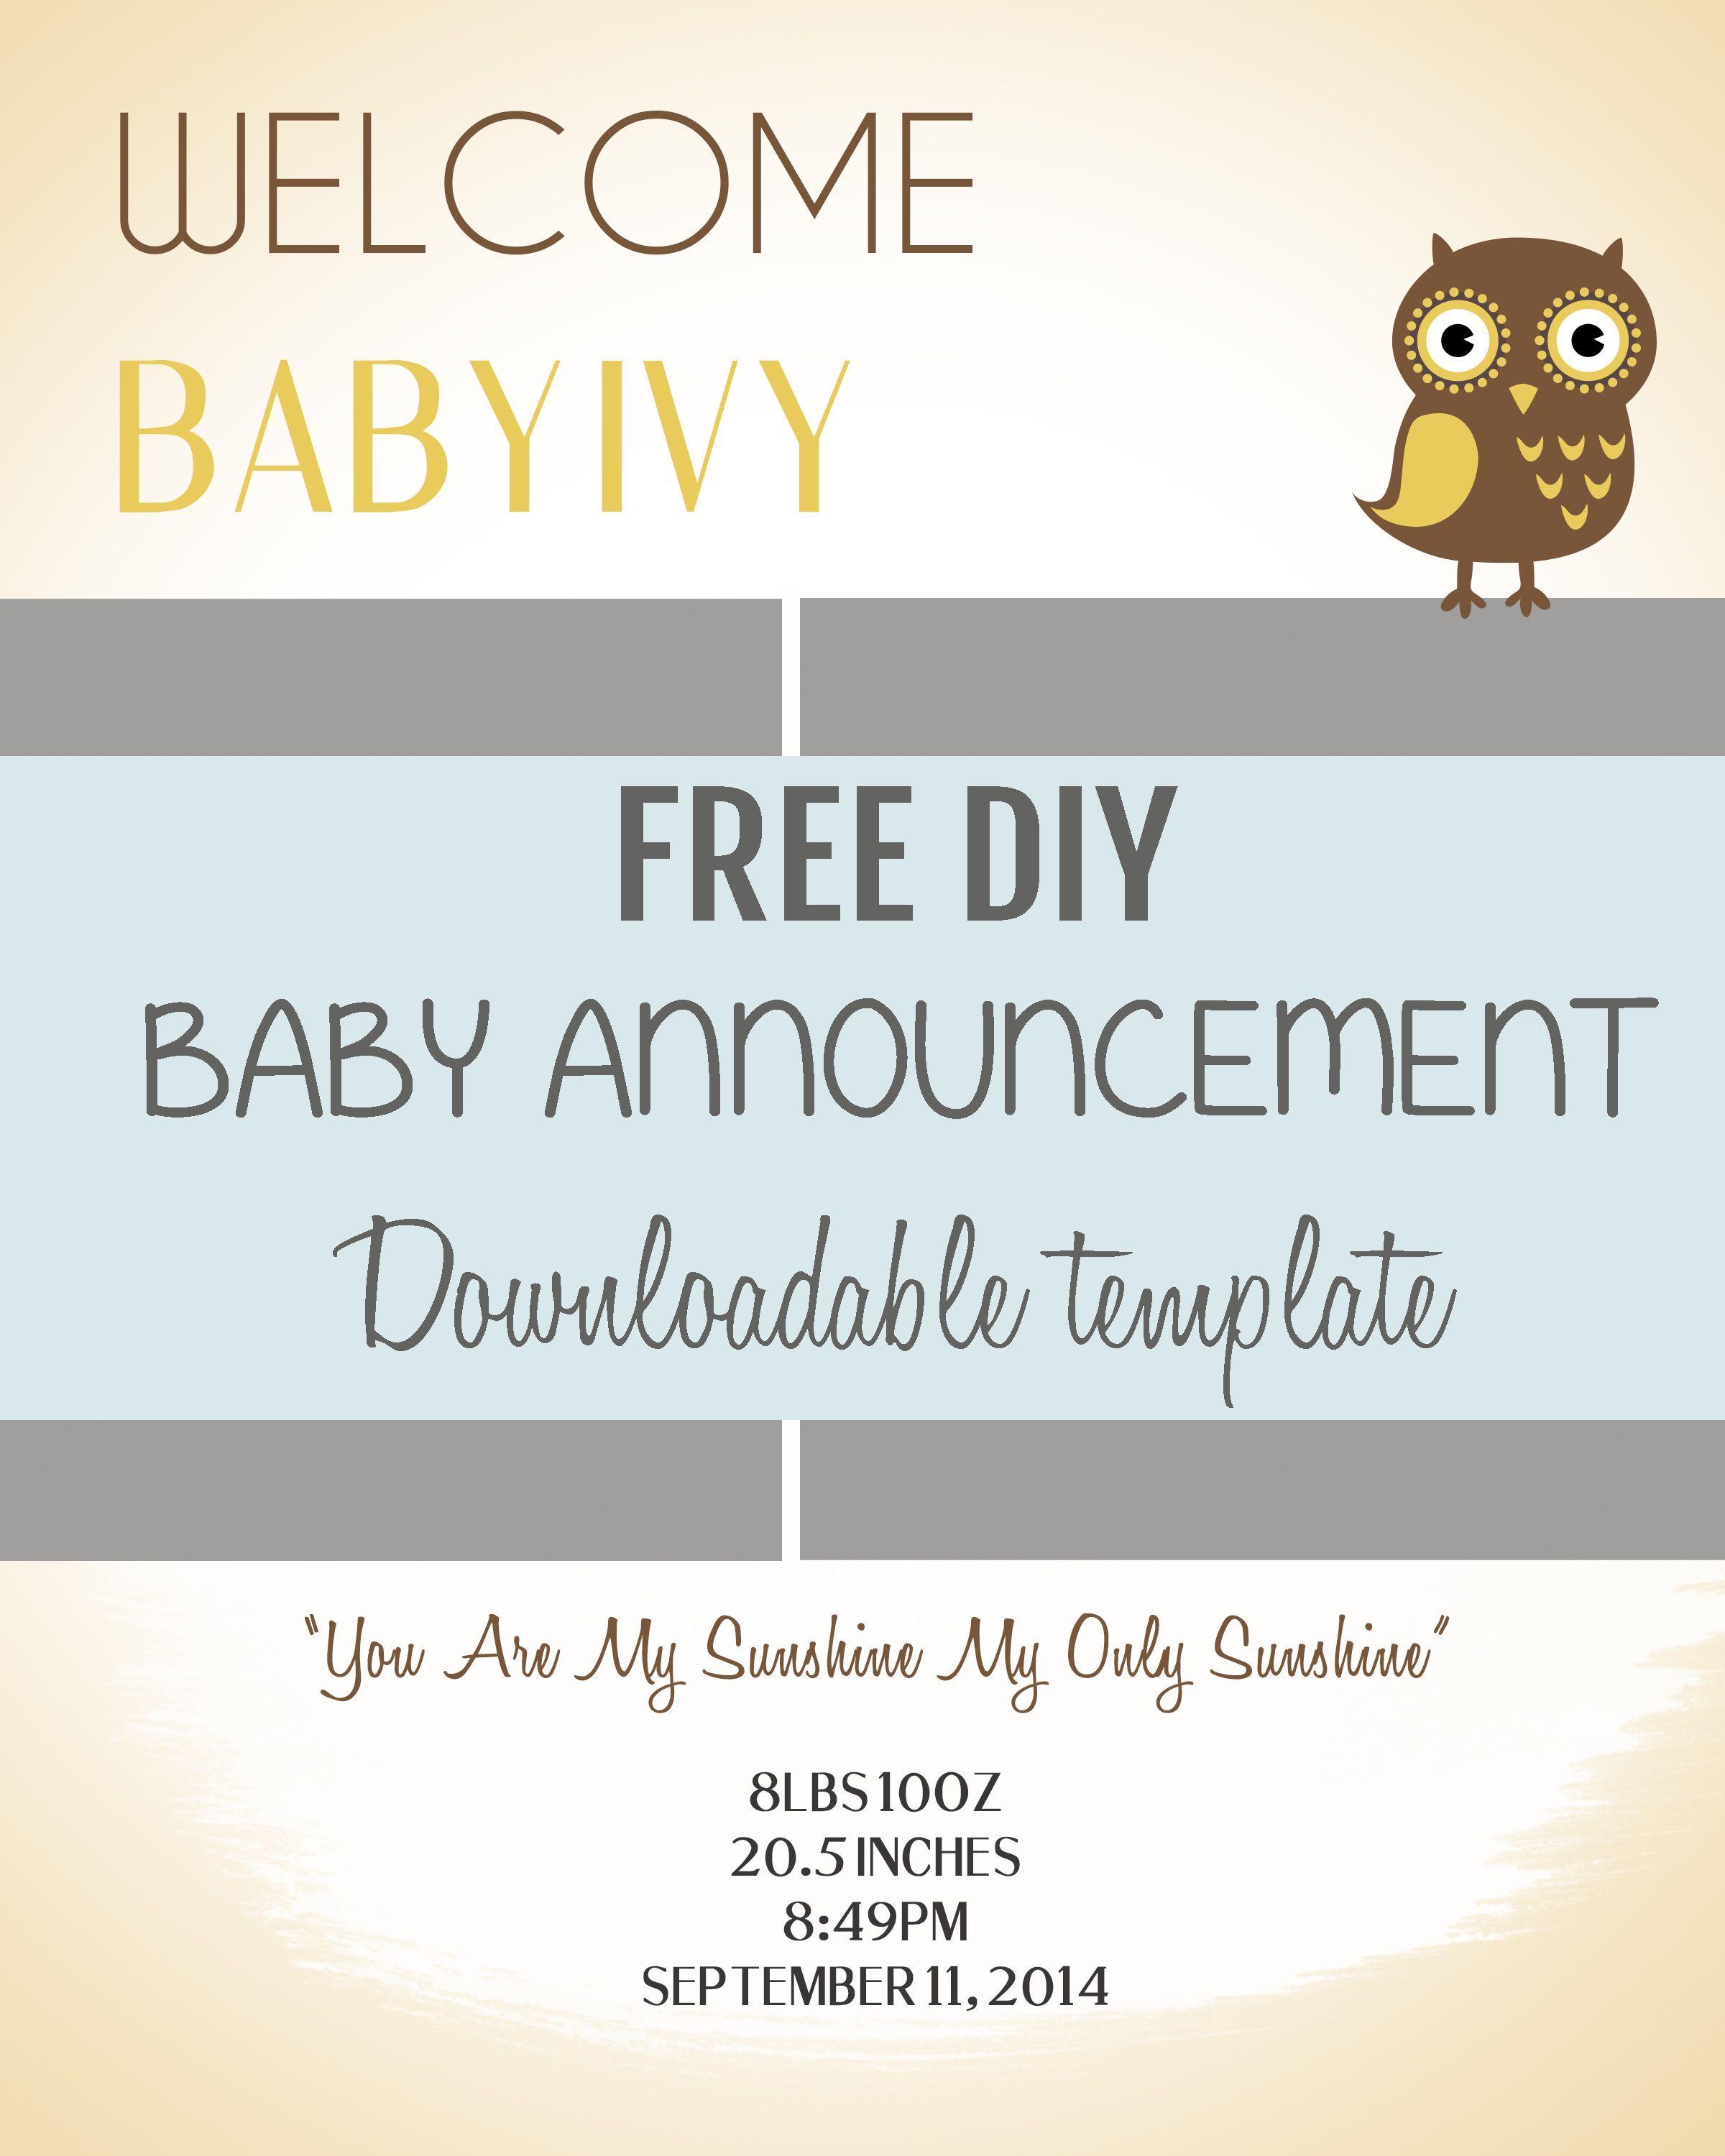 Diy Baby Announcement Template | Pee Wee | Fun Baby Announcement - Free Printable Baby Announcement Templates